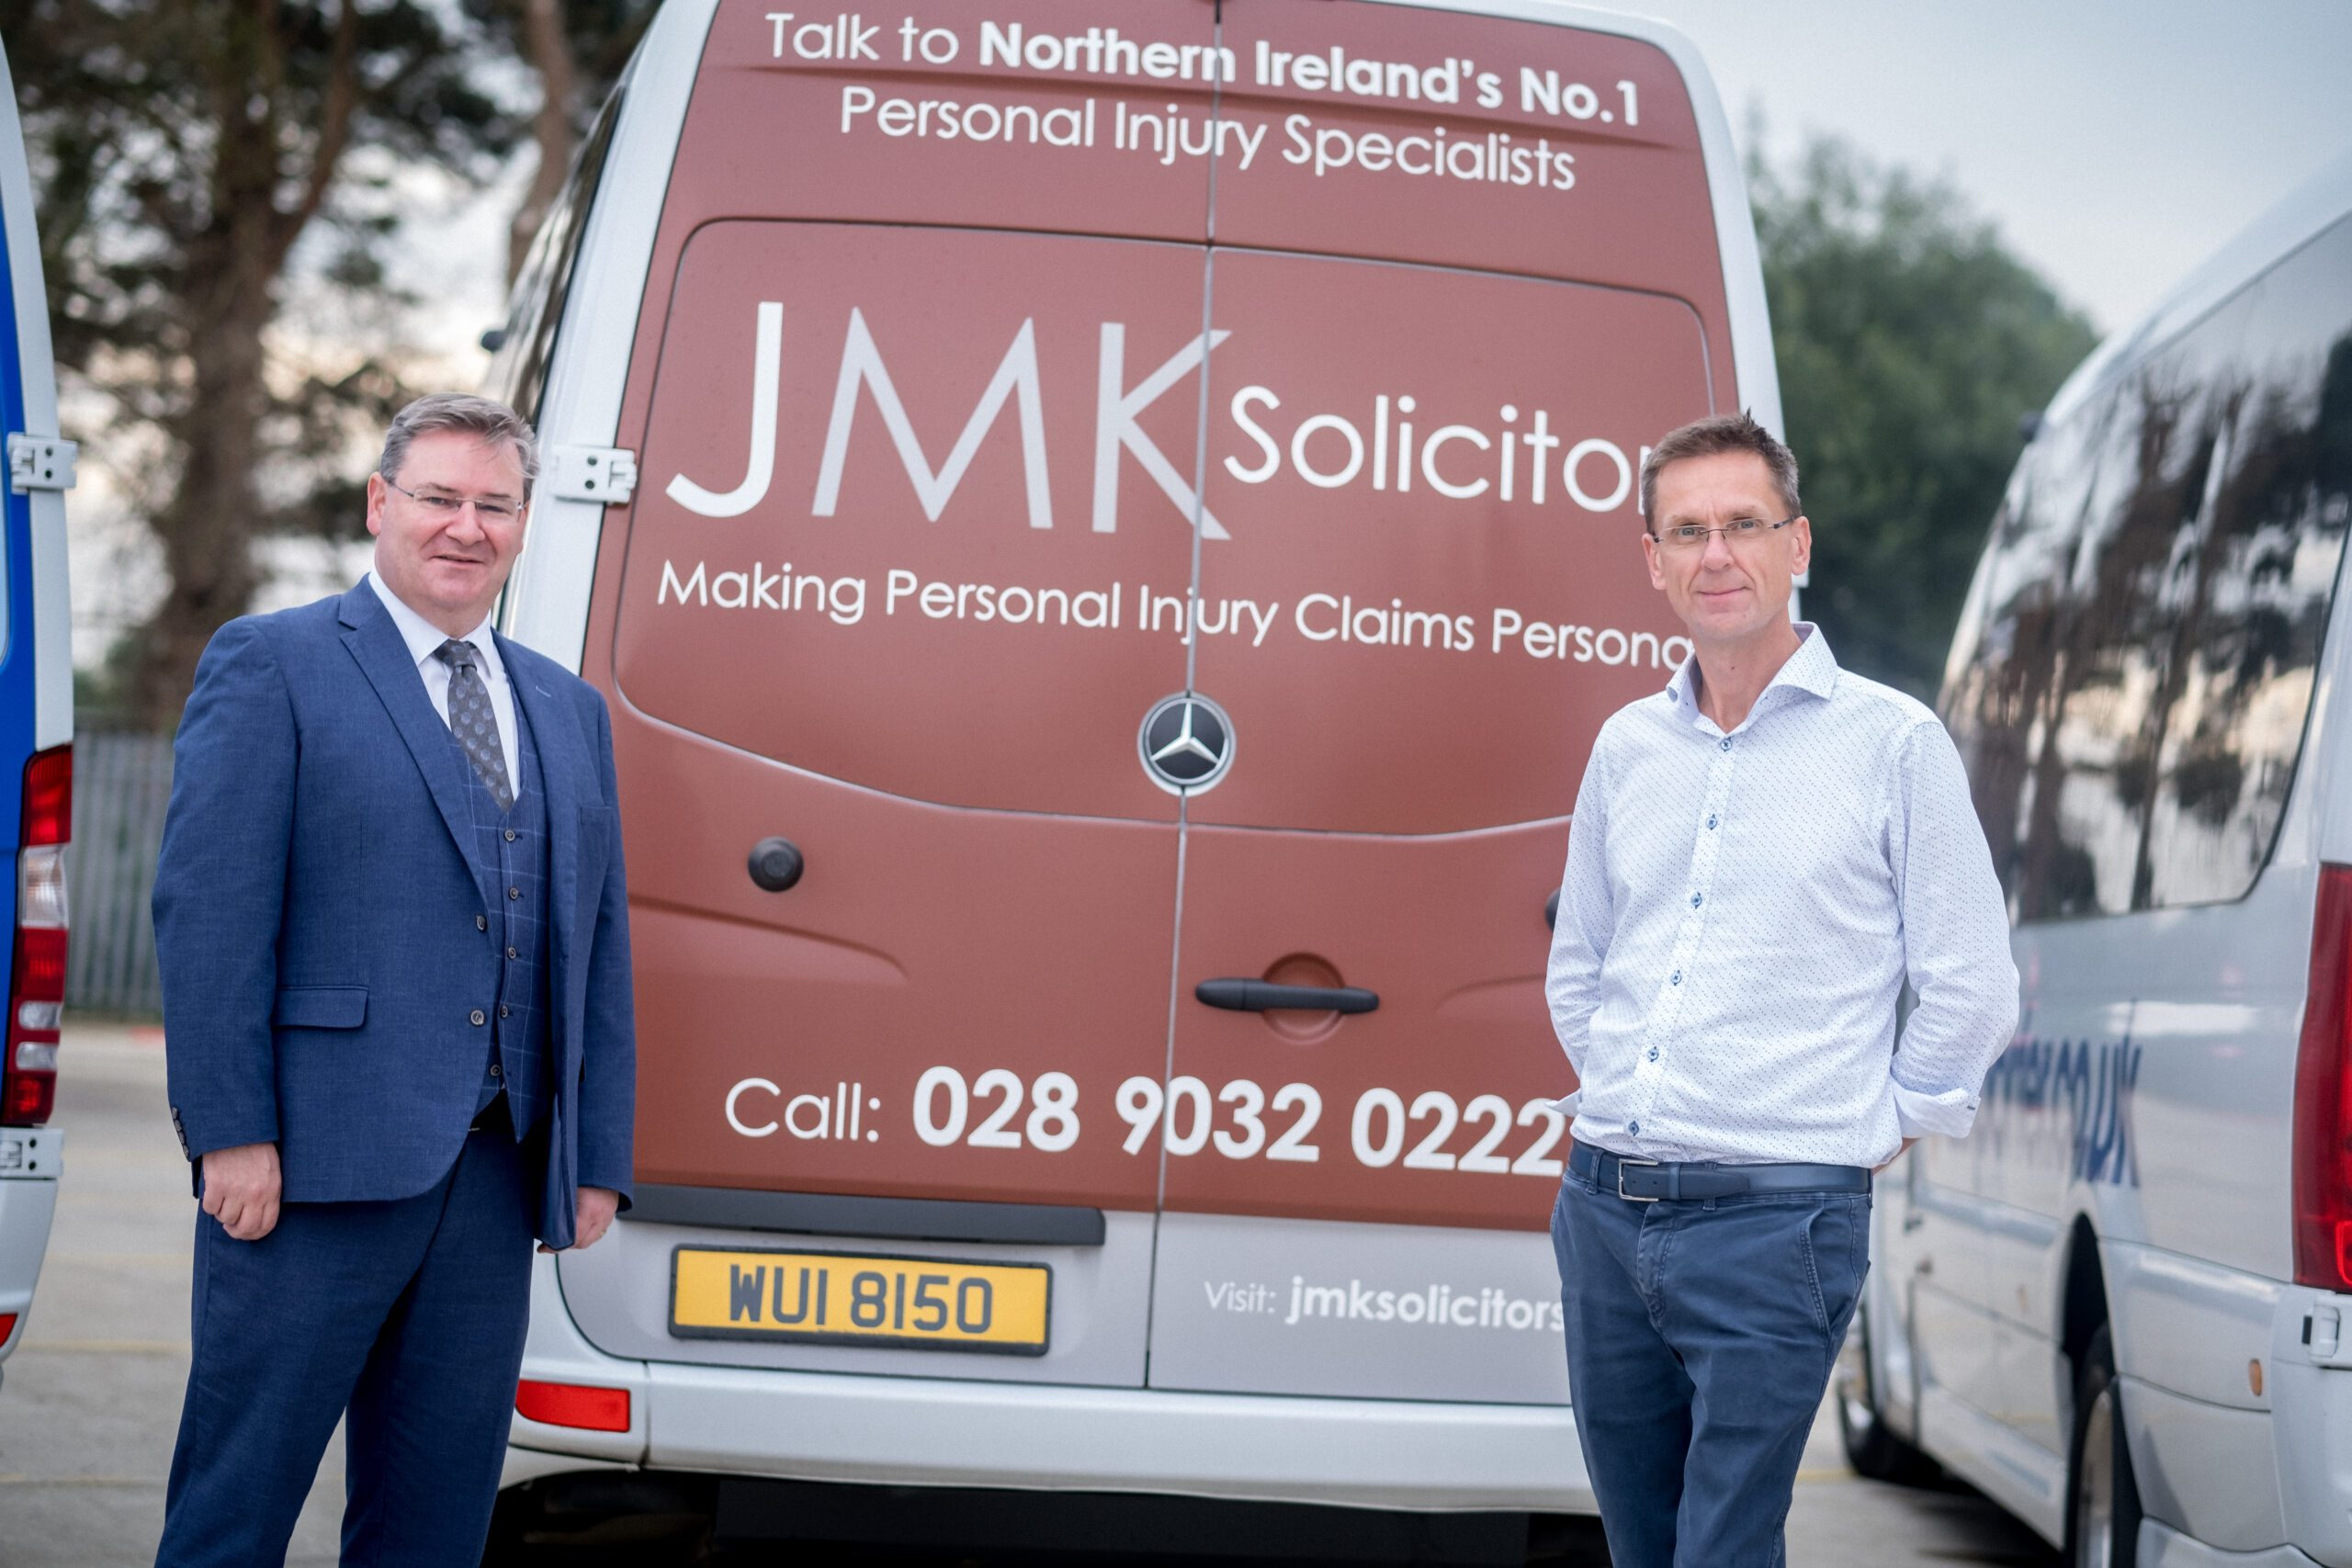 JMK Solicitors and Airporter